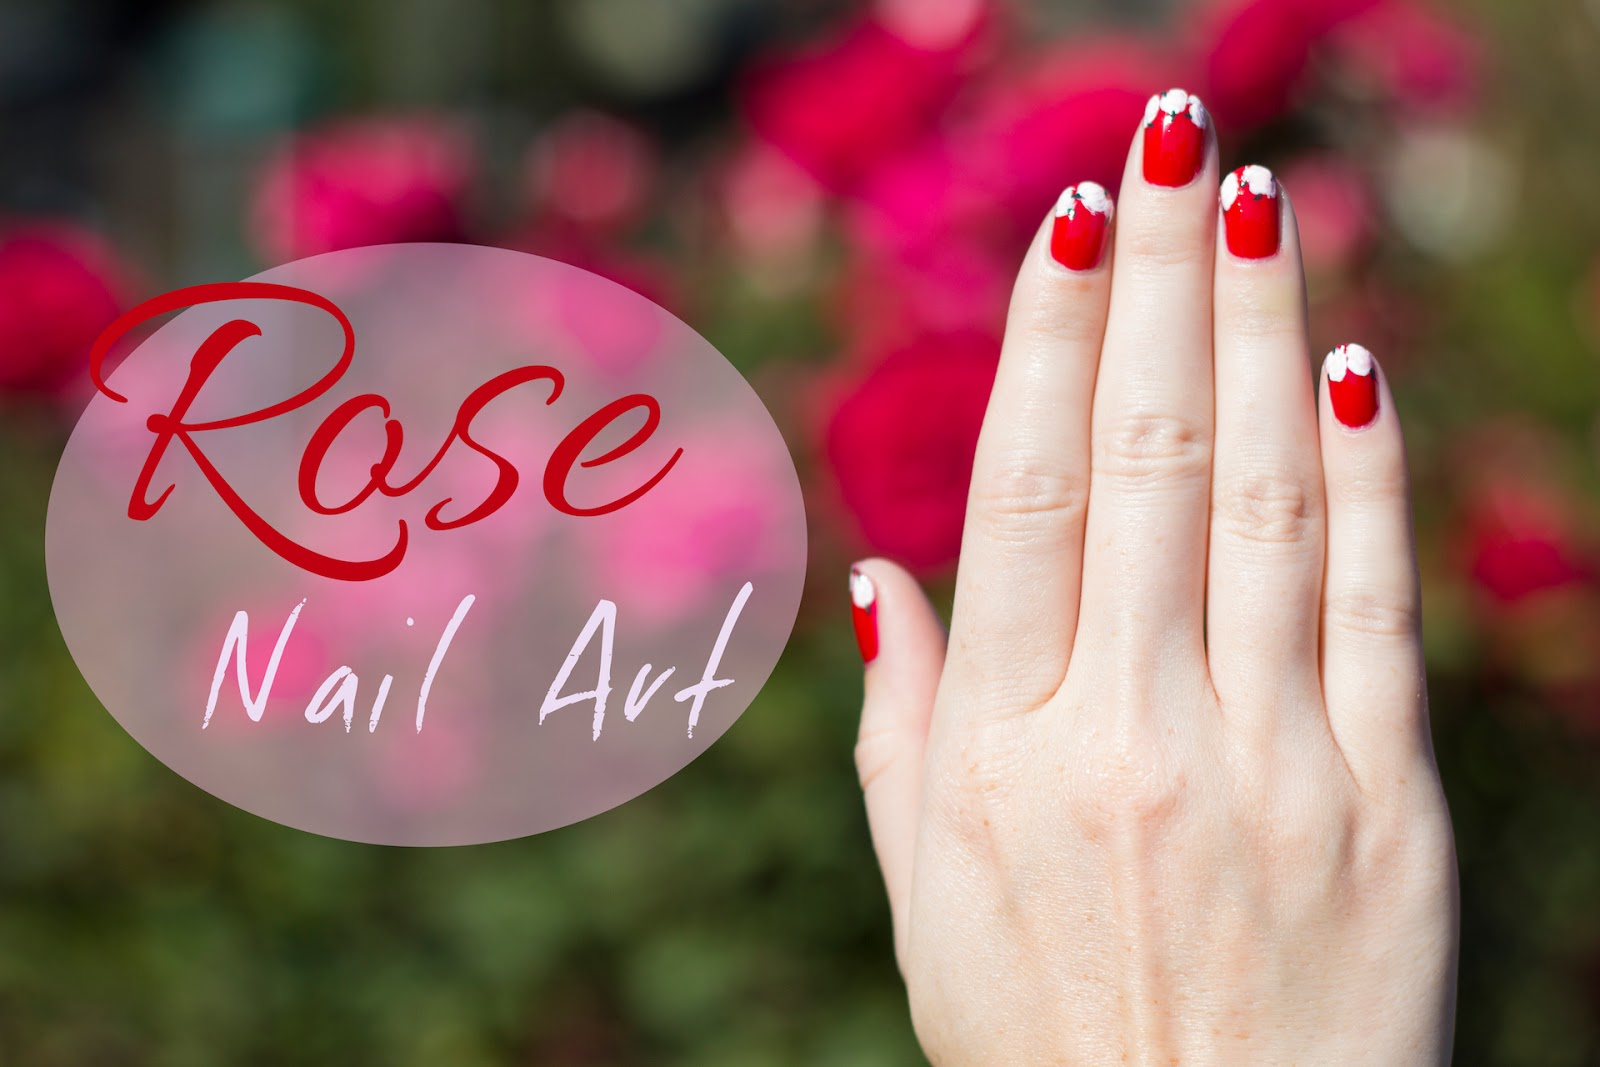 Rose City Nails: Rose City Nails First Video